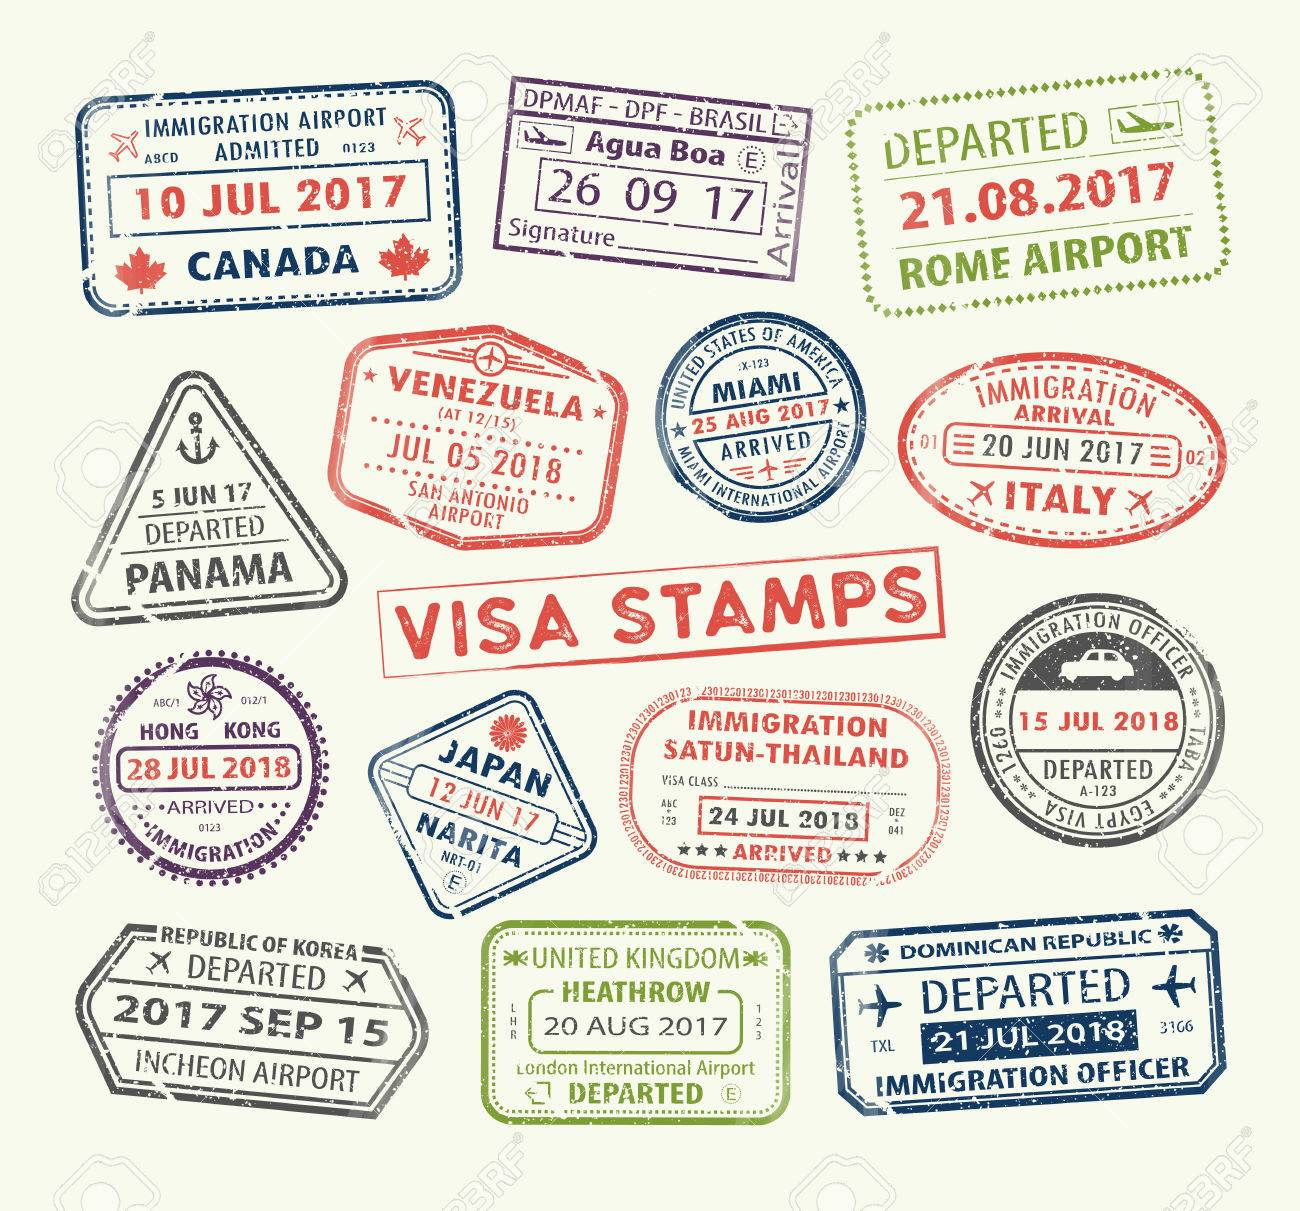 Isolated Set Of Visa Passport Stamp For Travel To Canada Or USA Uk China Venezuela Dominican Republic Japan Egypt Korea Brasil